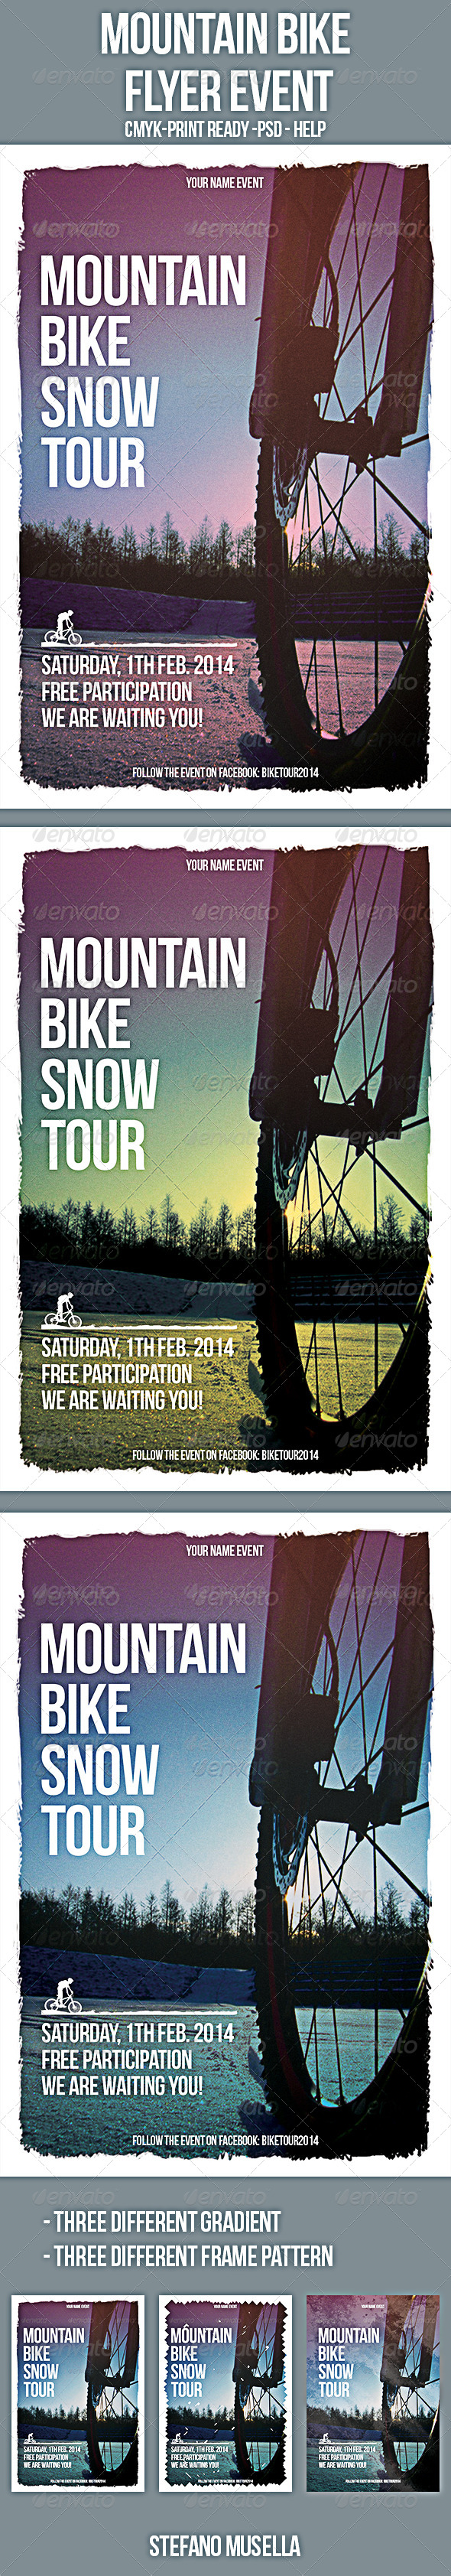 GraphicRiver Mountain Bike Flyer 6752419